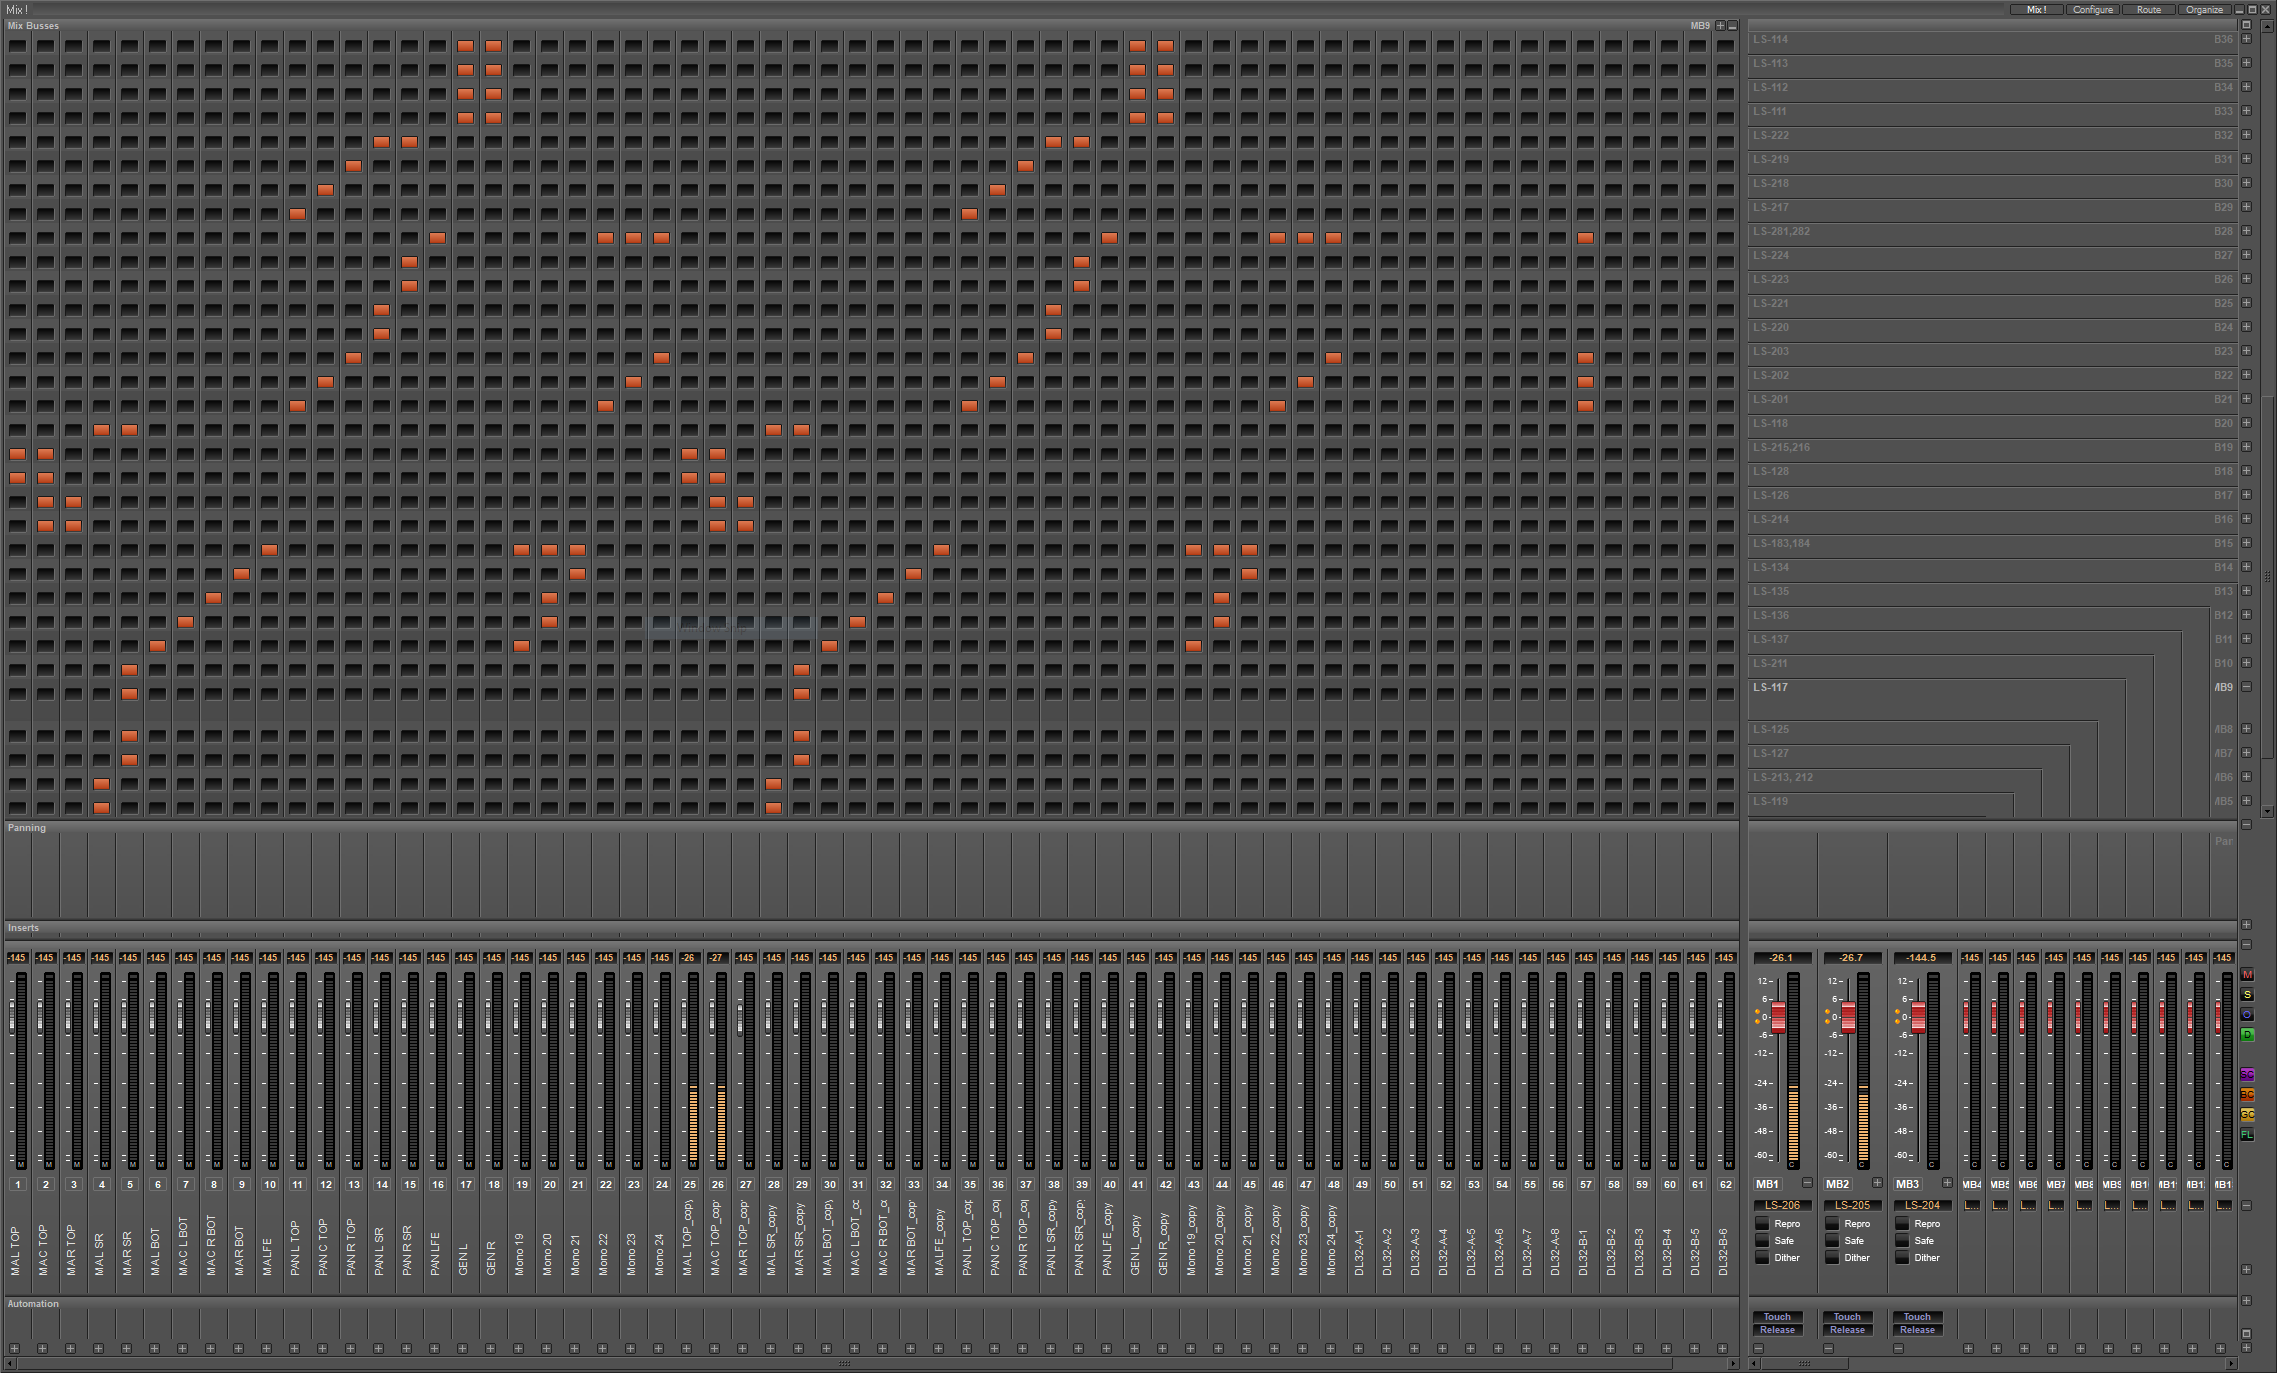 Mixer Matrix Grid